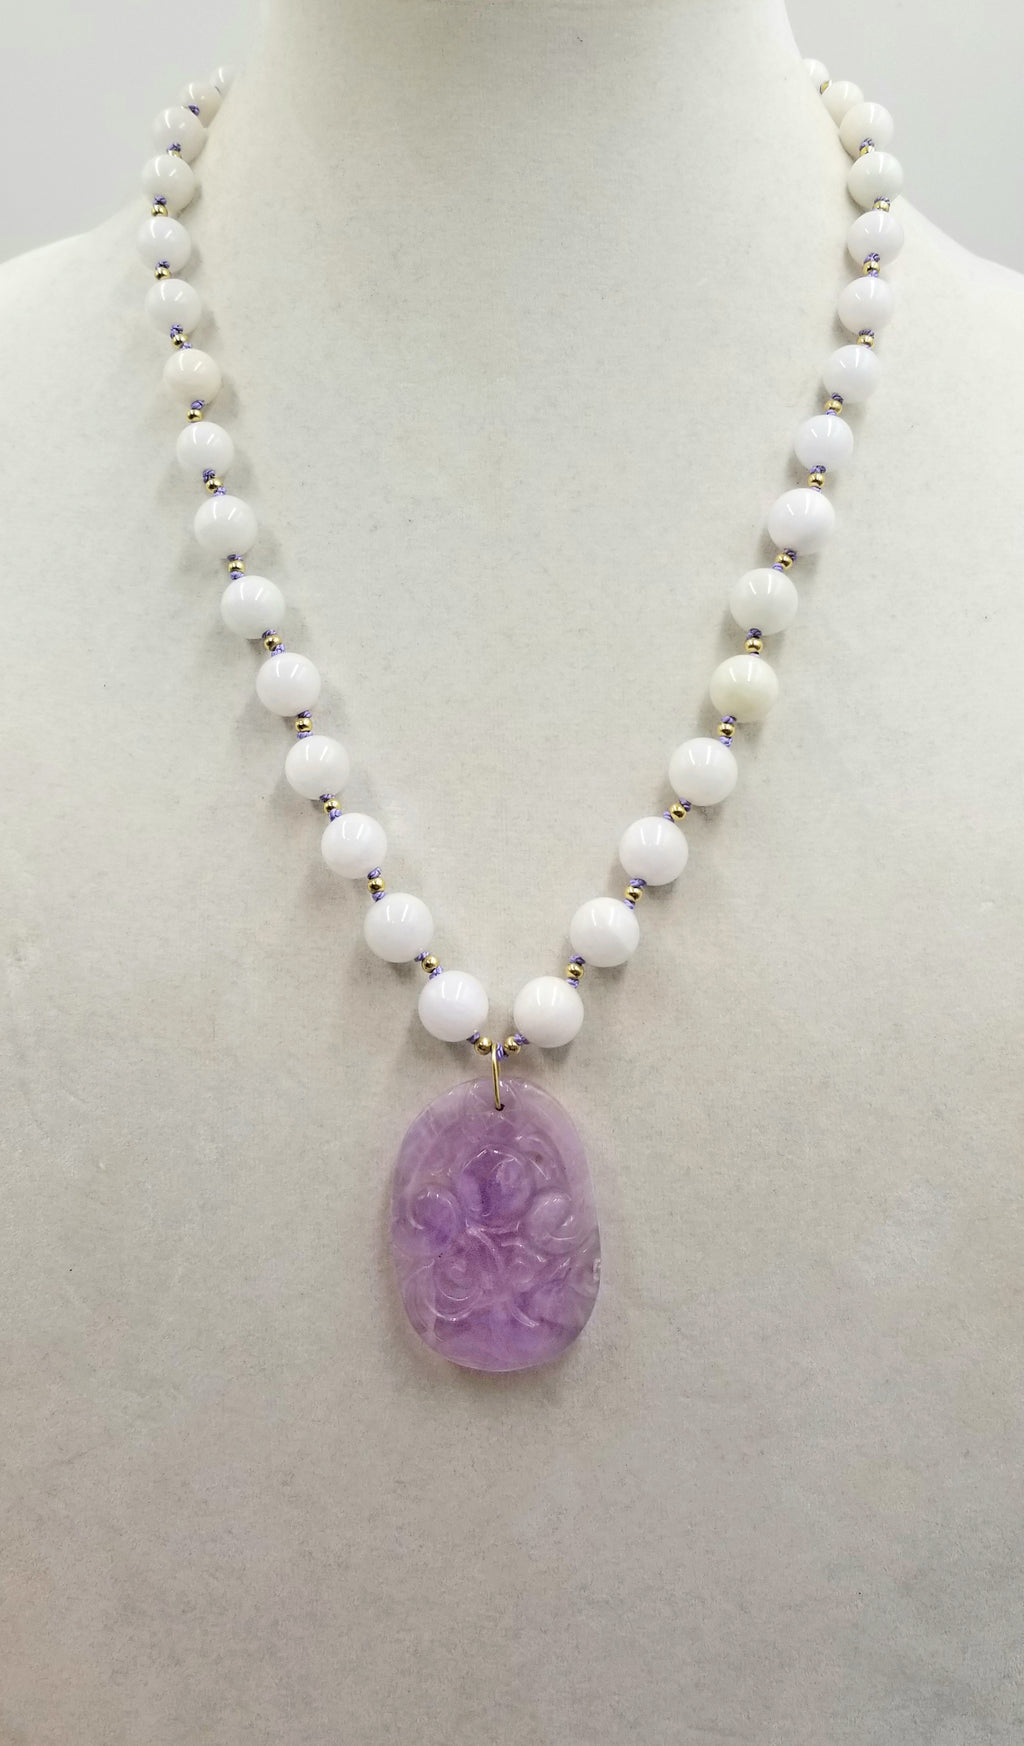 Lavender jadeite carved amulet with graduated white jadeite beads, 14KYG, necklace master hand-knotted periwinkle silk.